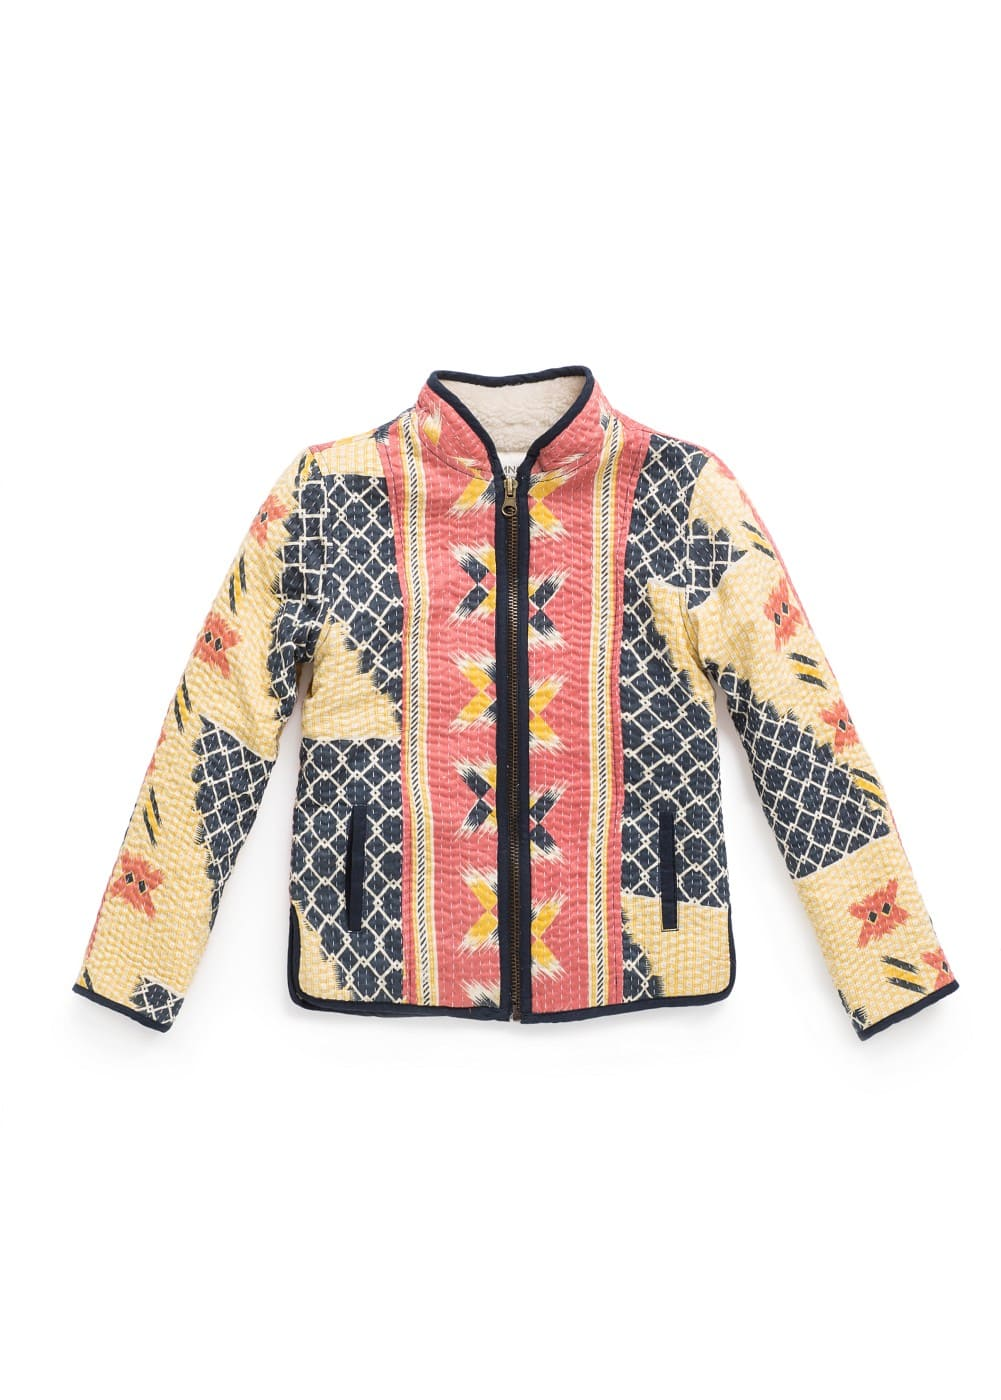 SHEARLING EFFECT PRINTED JACKET